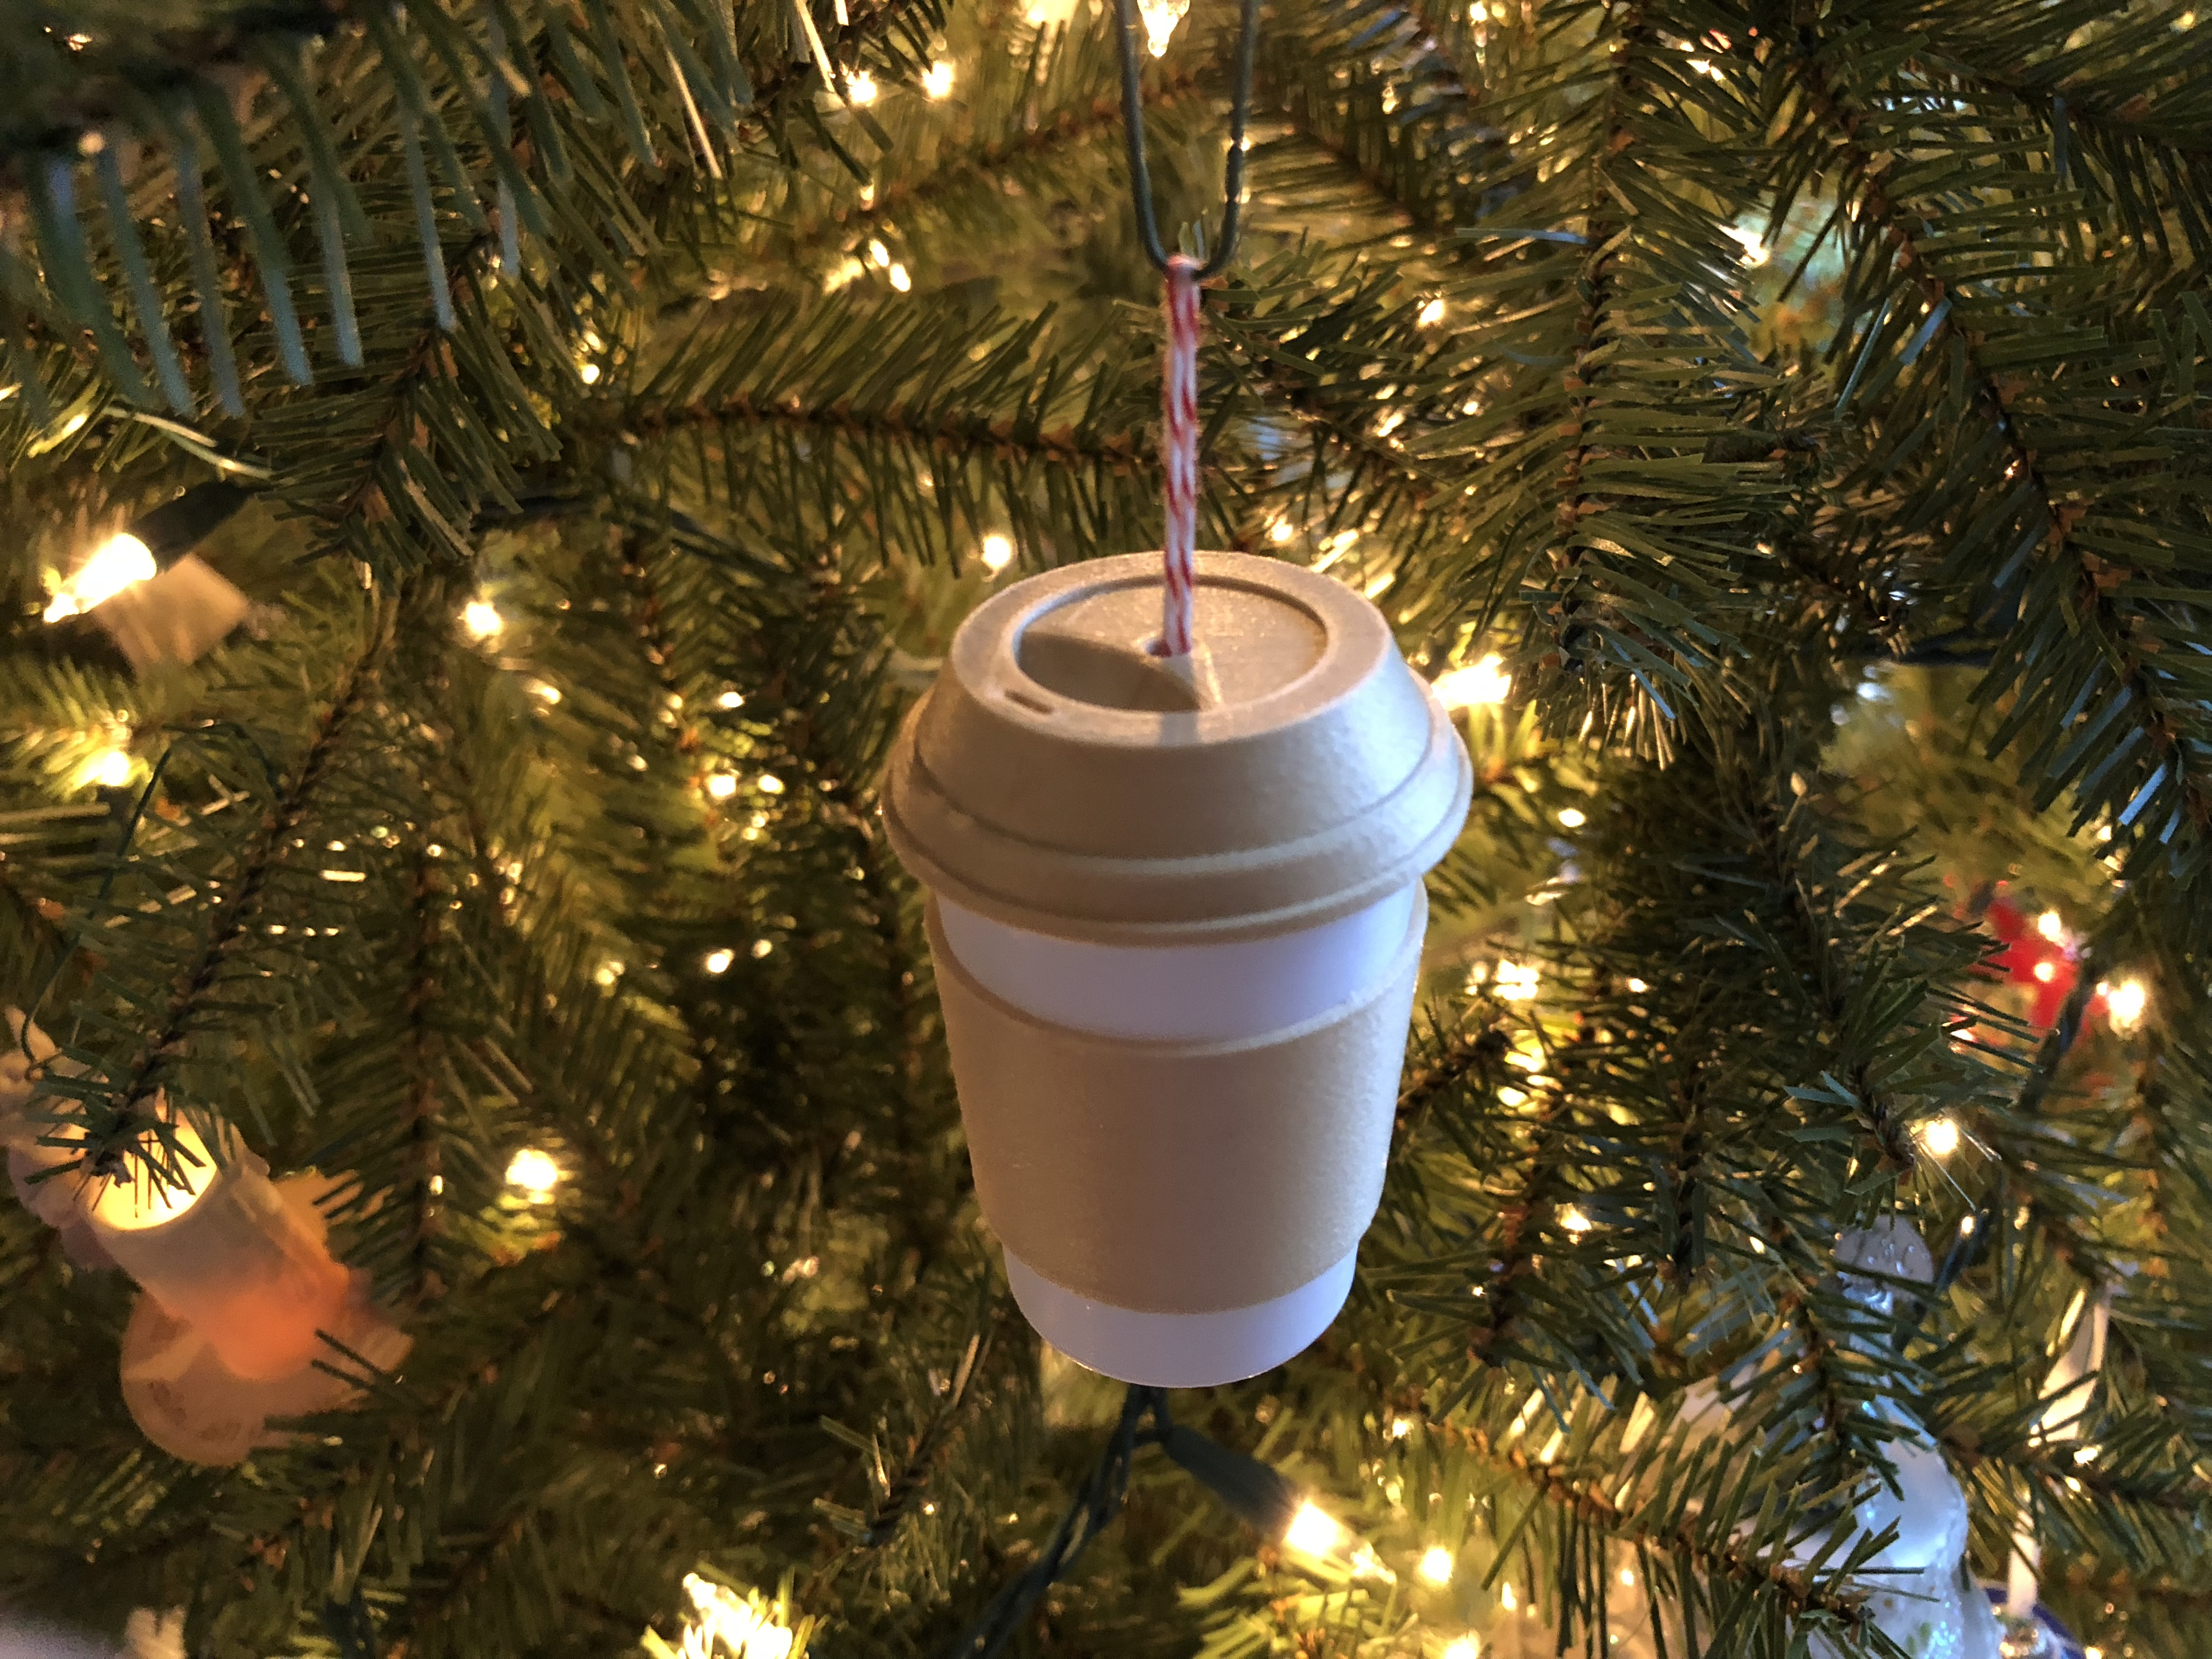 Coffee Christmas Ornaments.Coffee Cup Christmas Ornament By Bpmarkowitz Thingiverse